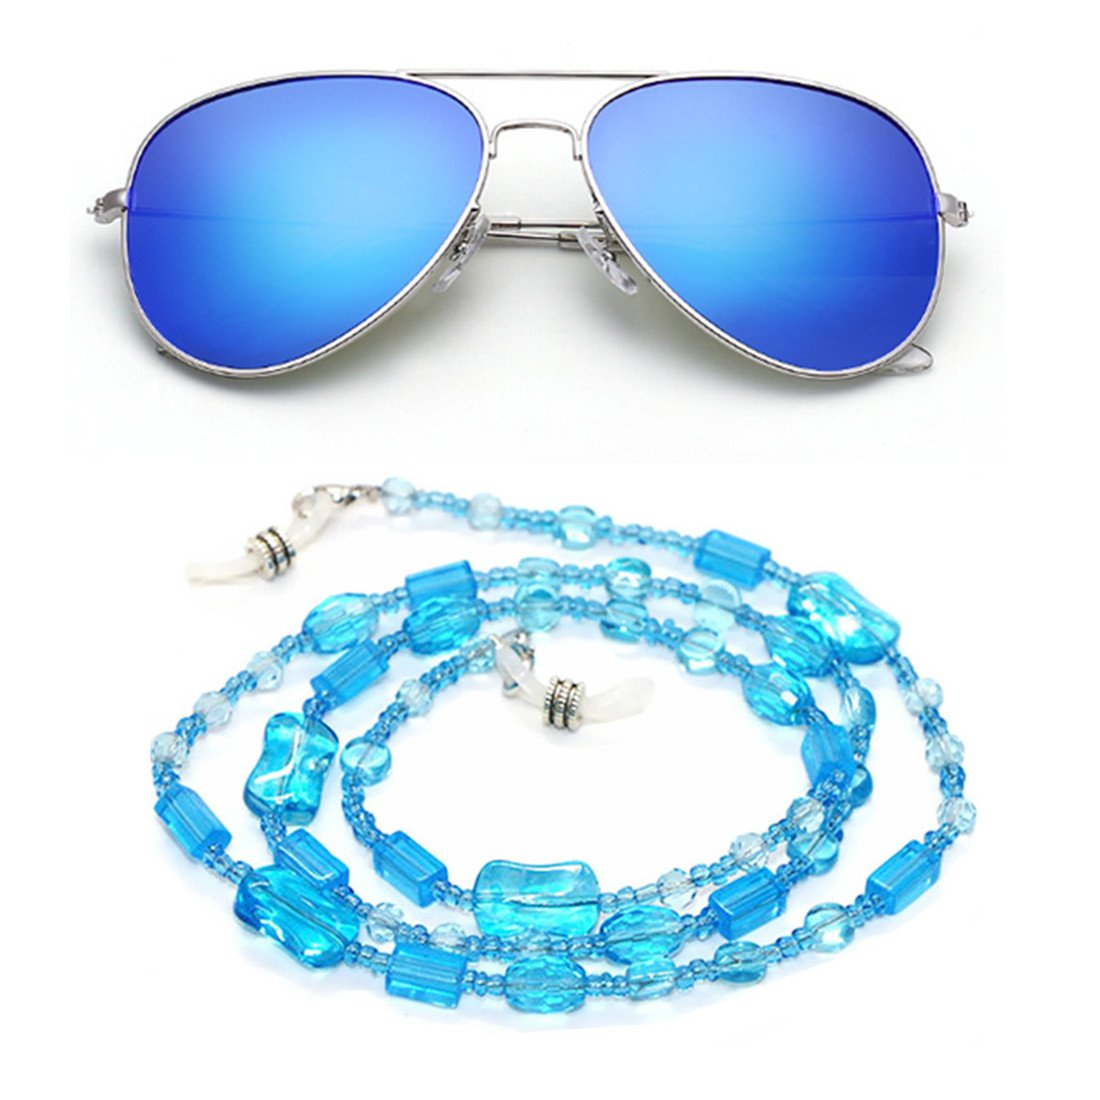 fad9a35f2e5 Get Quotations · Kalevel Eyeglass Chain Holder Glasses Strap Eyeglass  Chains and Cords for Women